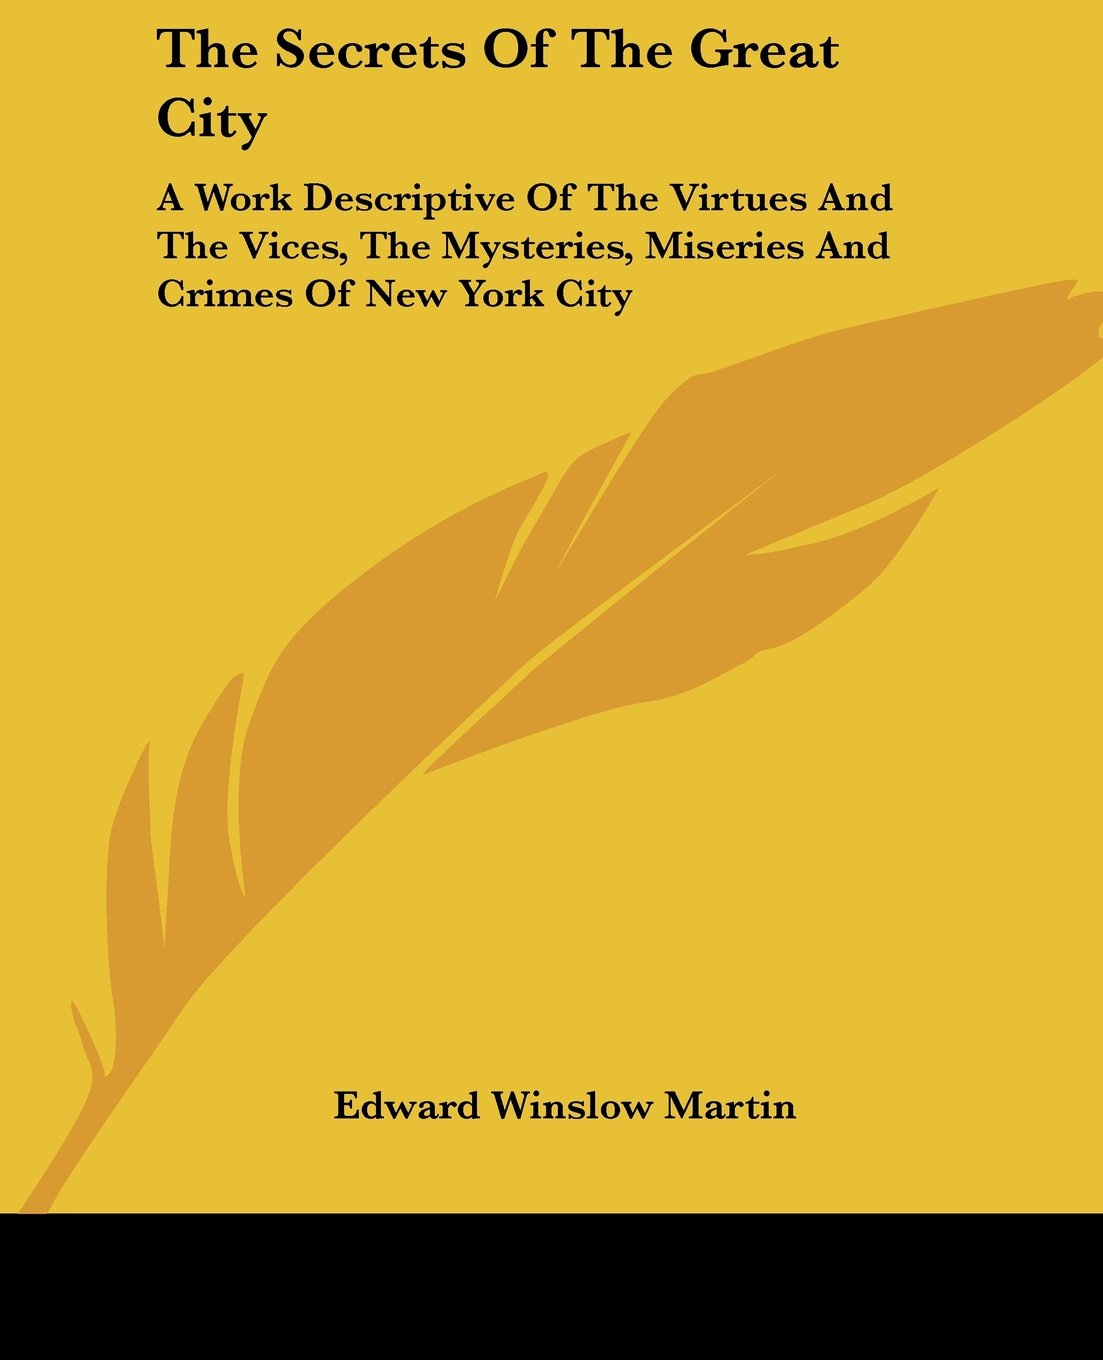 The Secrets Of The Great City: A Work Descriptive Of The Virtues And The Vices, The Mysteries, Miseries And Crimes Of New York City PDF